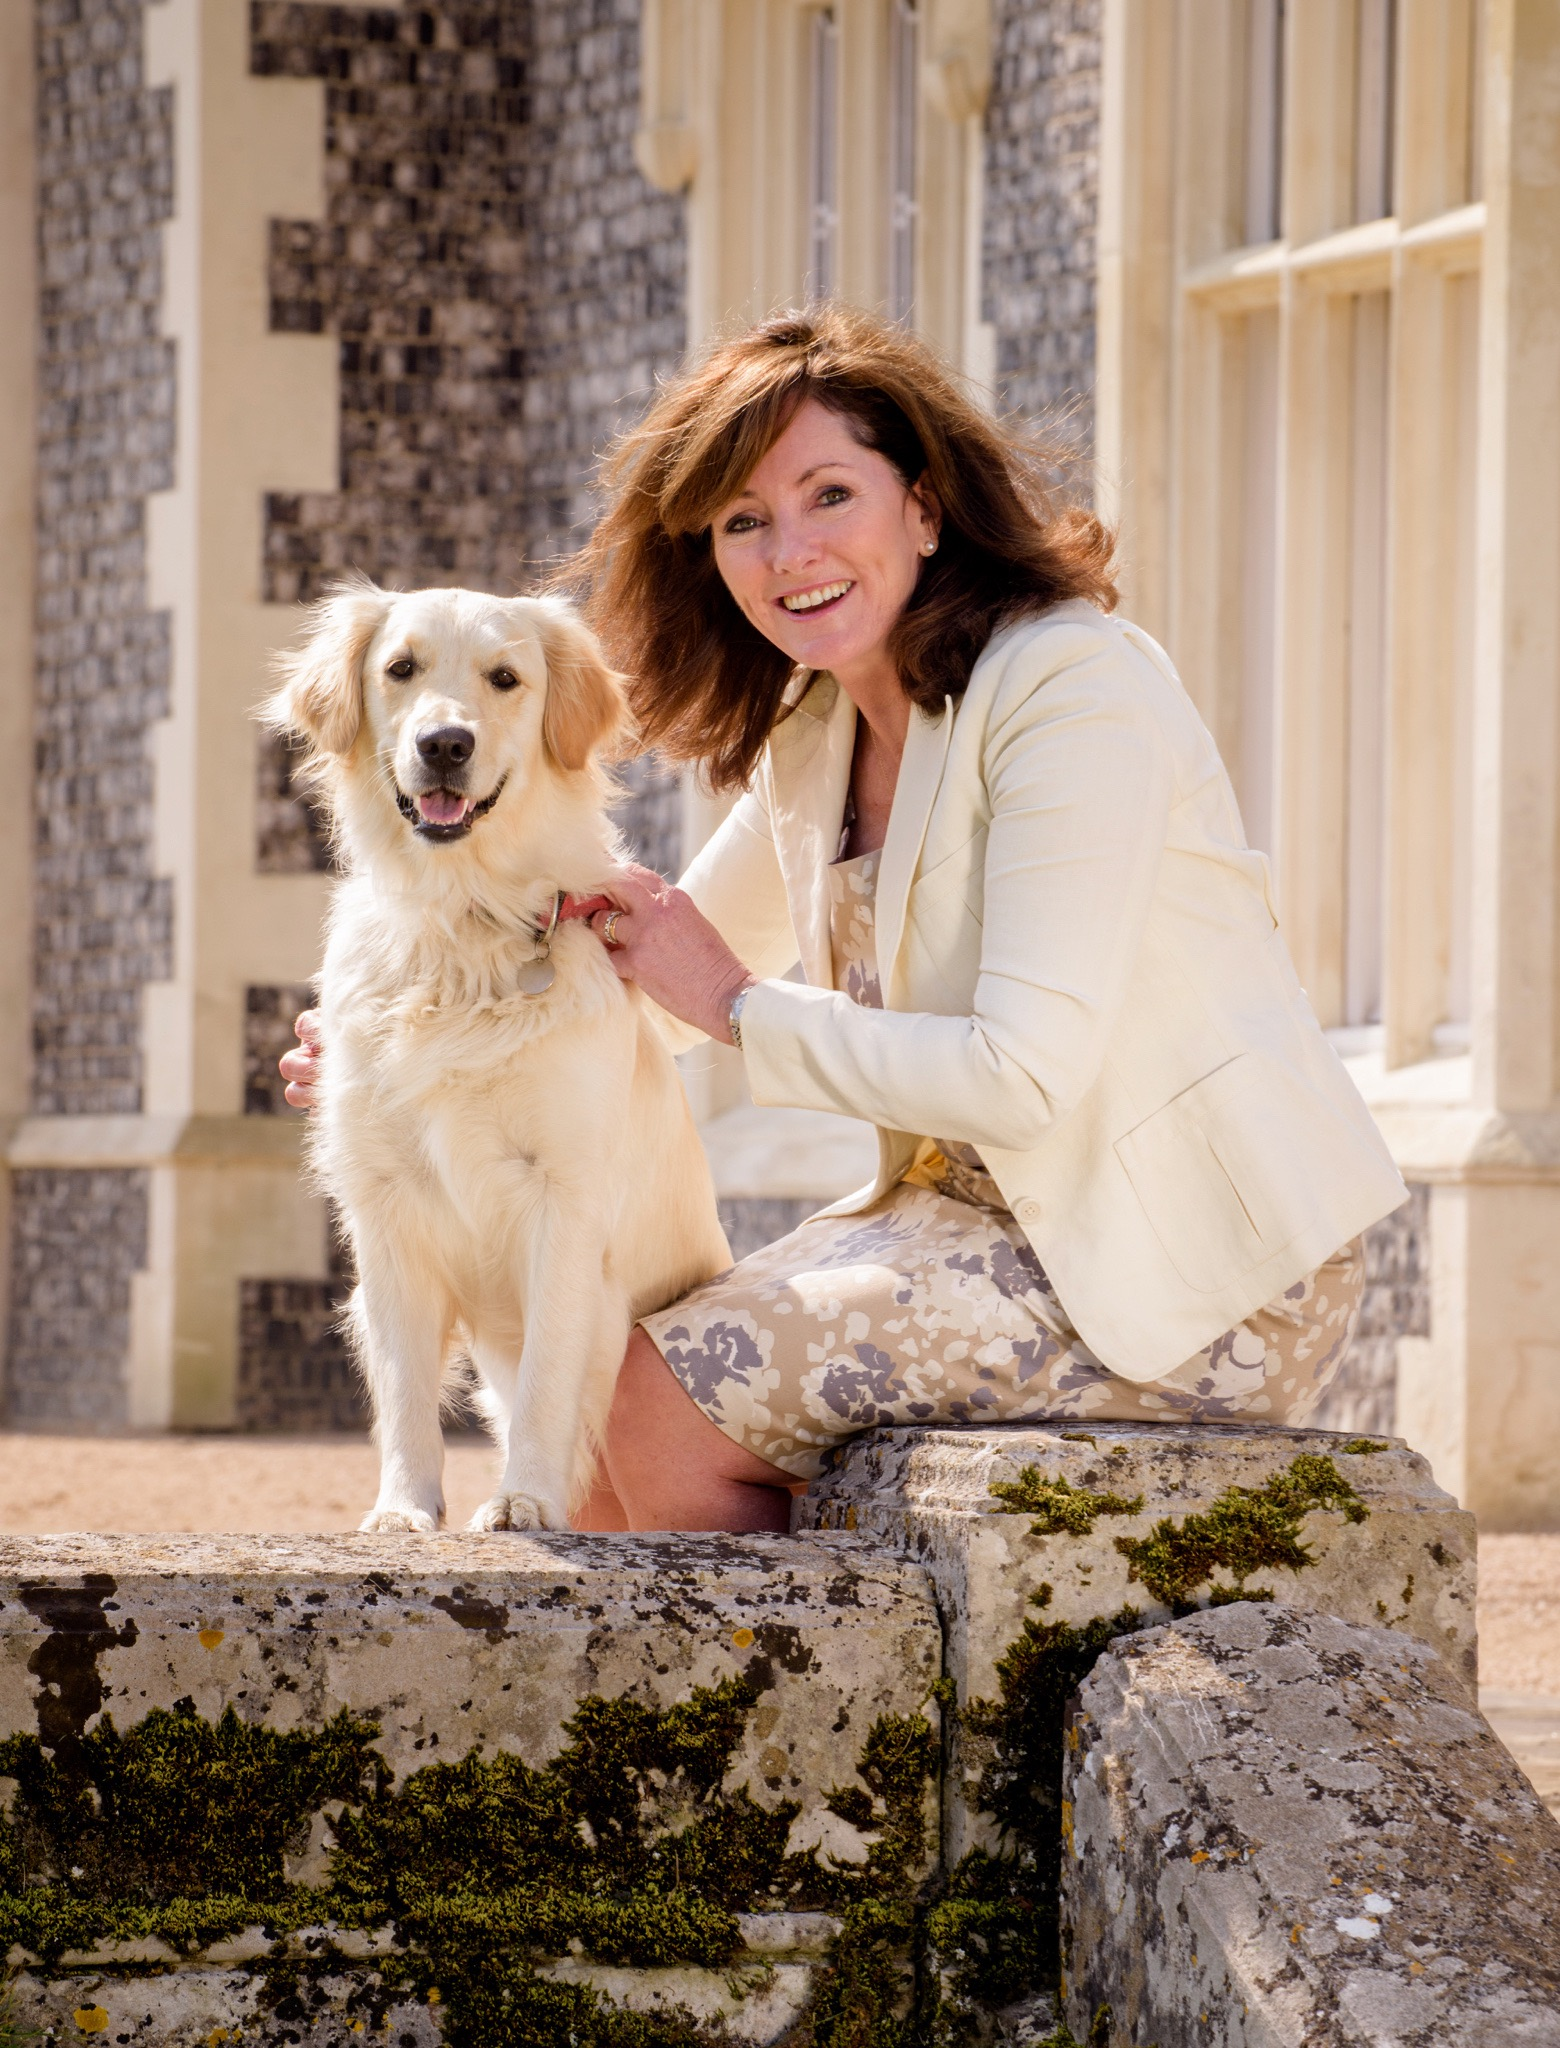 Jacquie Brunjes with Lullah the family dog at Folkinton Manor- picture taken for Sussex Life May 2015